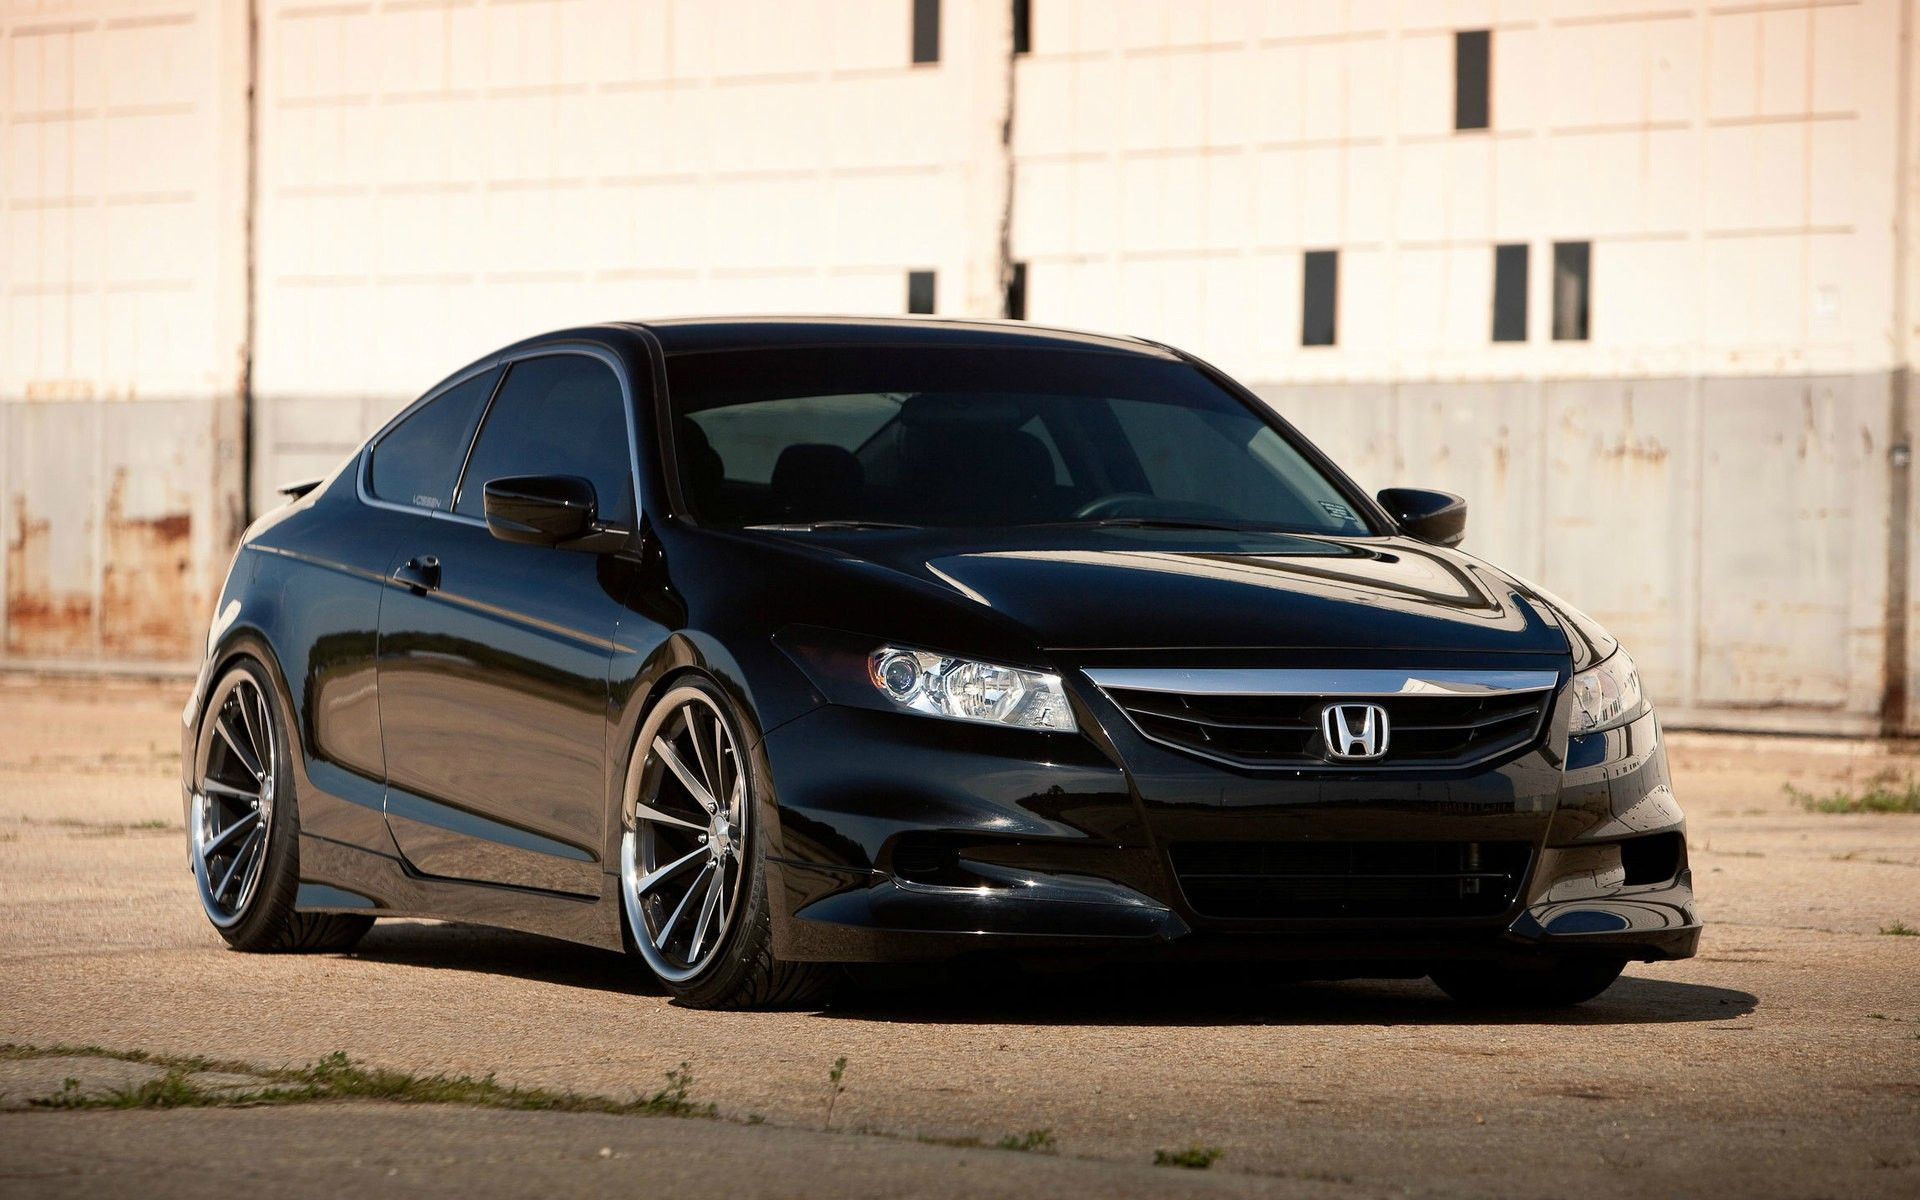 specs honda used and accord buy prices ex coupe